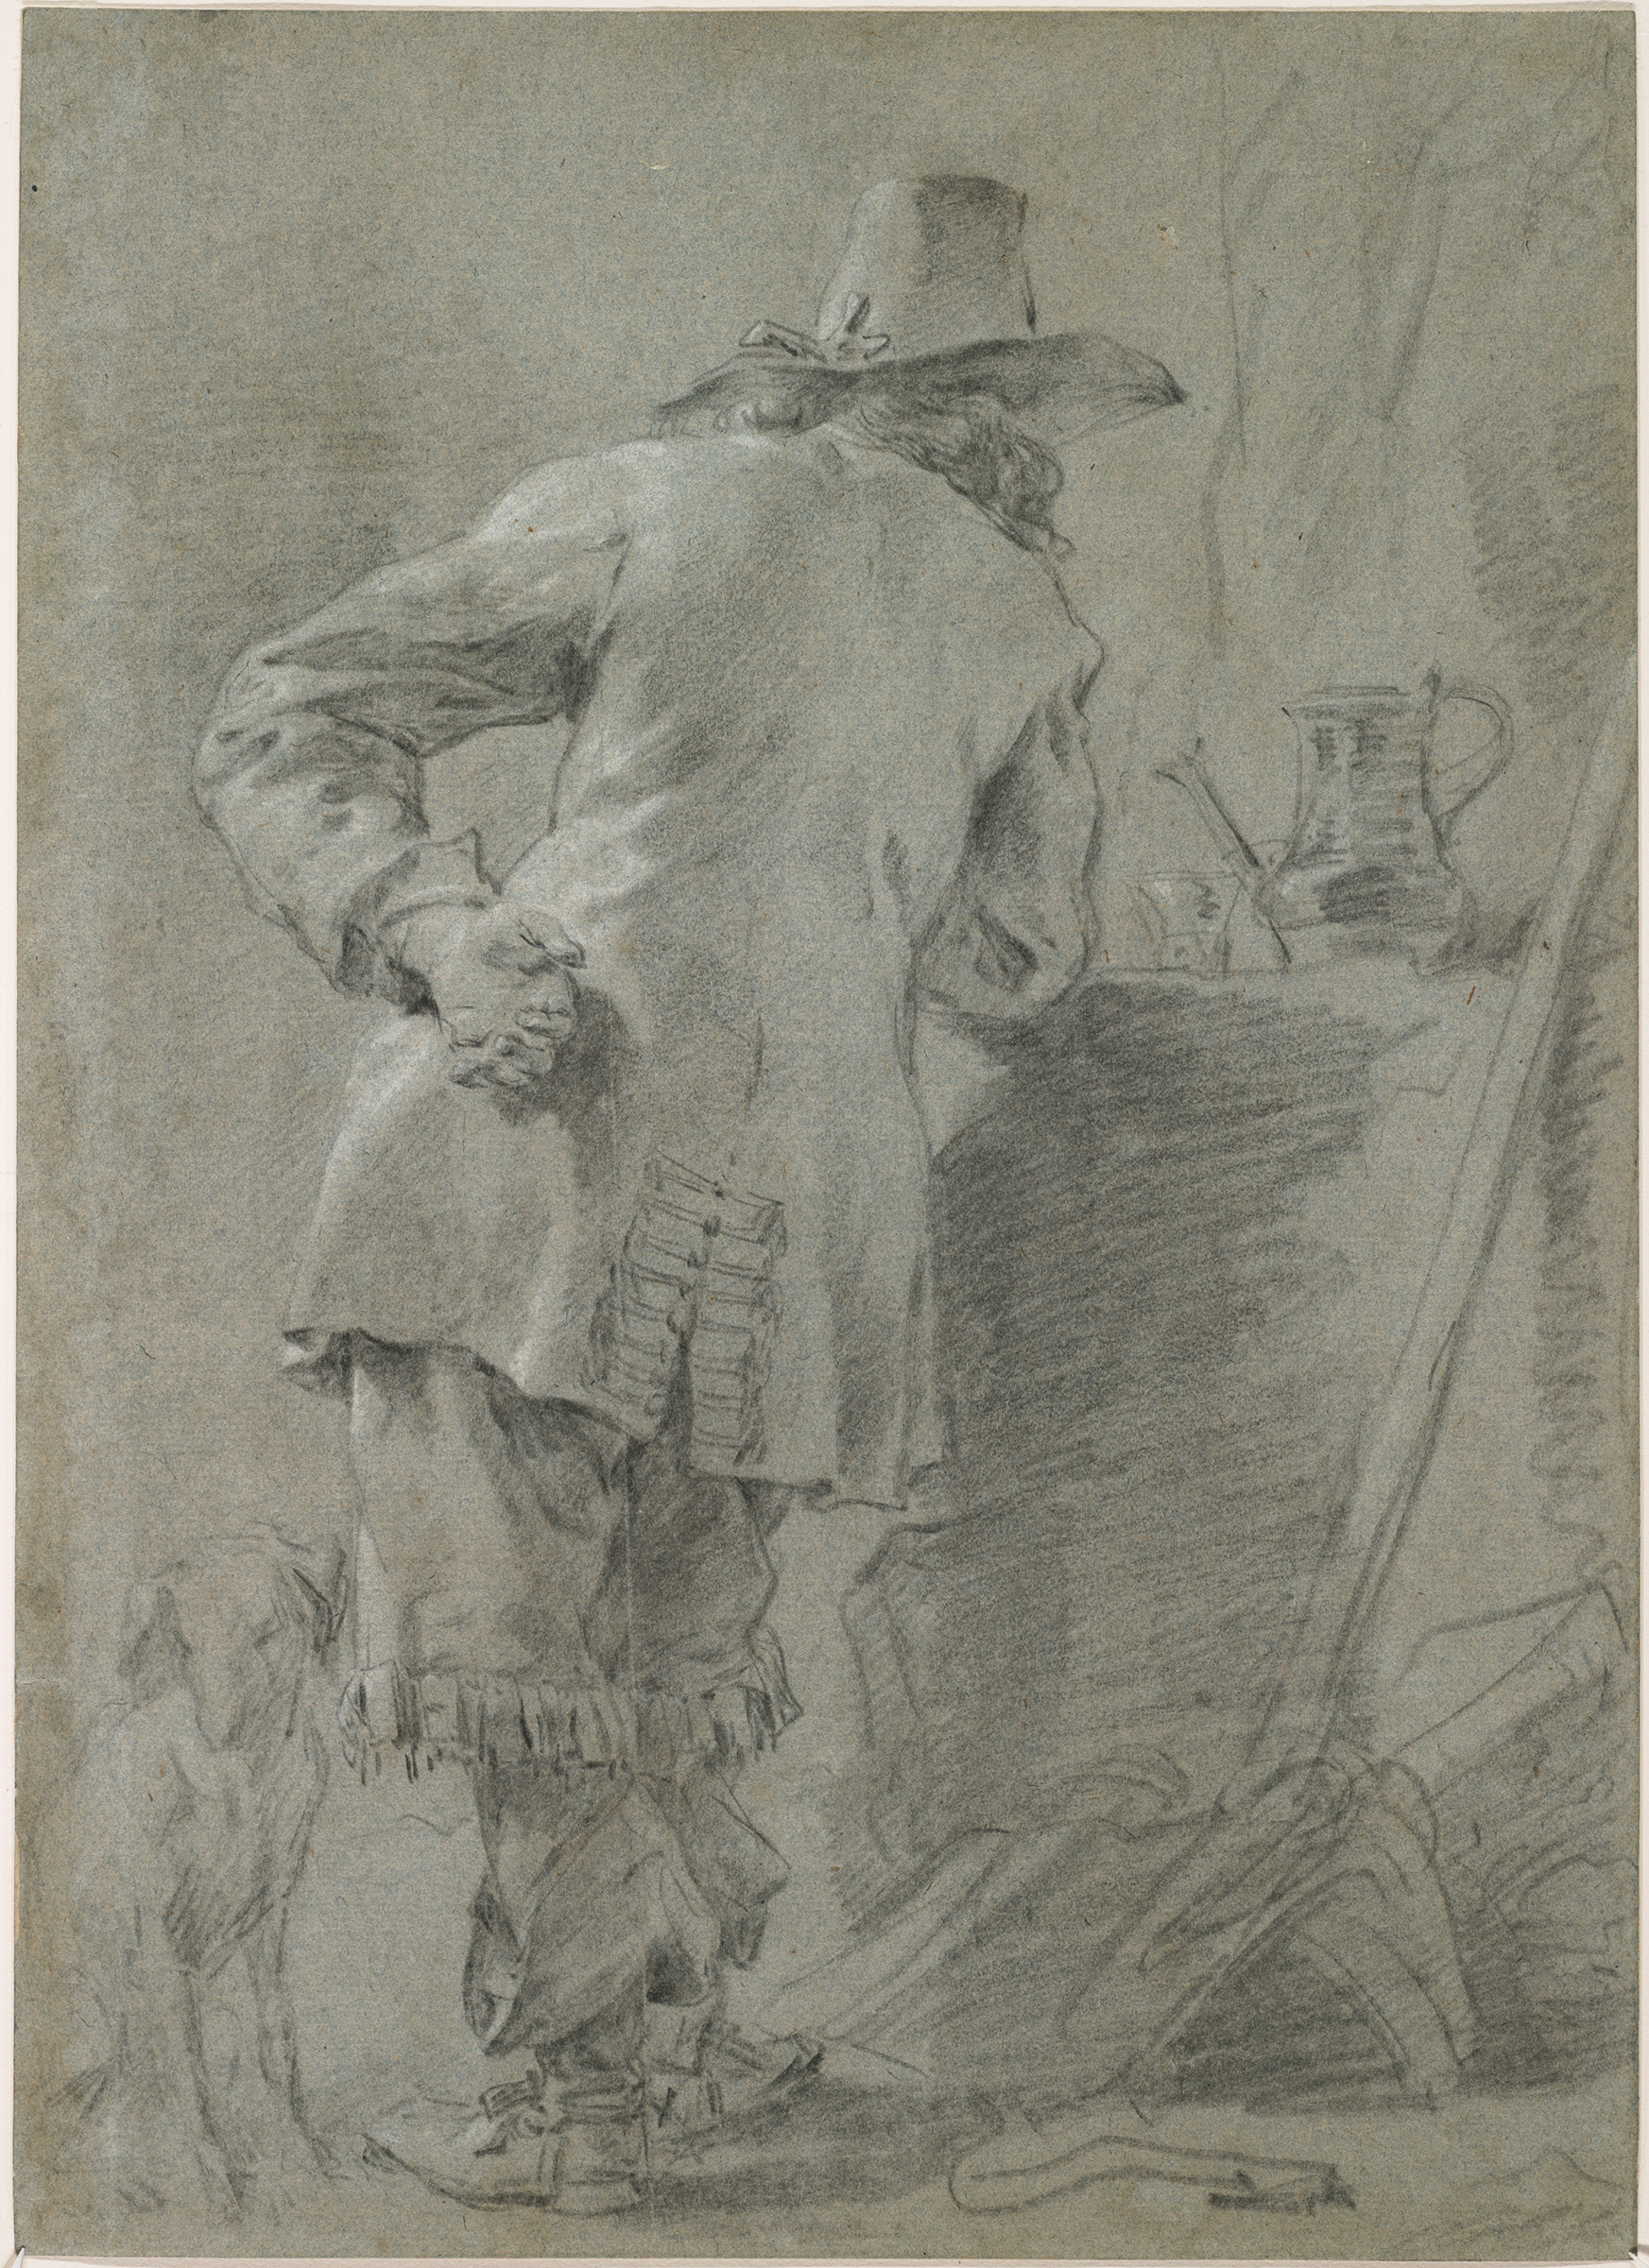 Nicolaes Berchem, A Standing Man Seen from Behind, c. 1660. Black and white chalk on blue paper. The Maida and George Abrams Collection, Boston, Massachusetts. Photo: © President and Fellows of Harvard College.